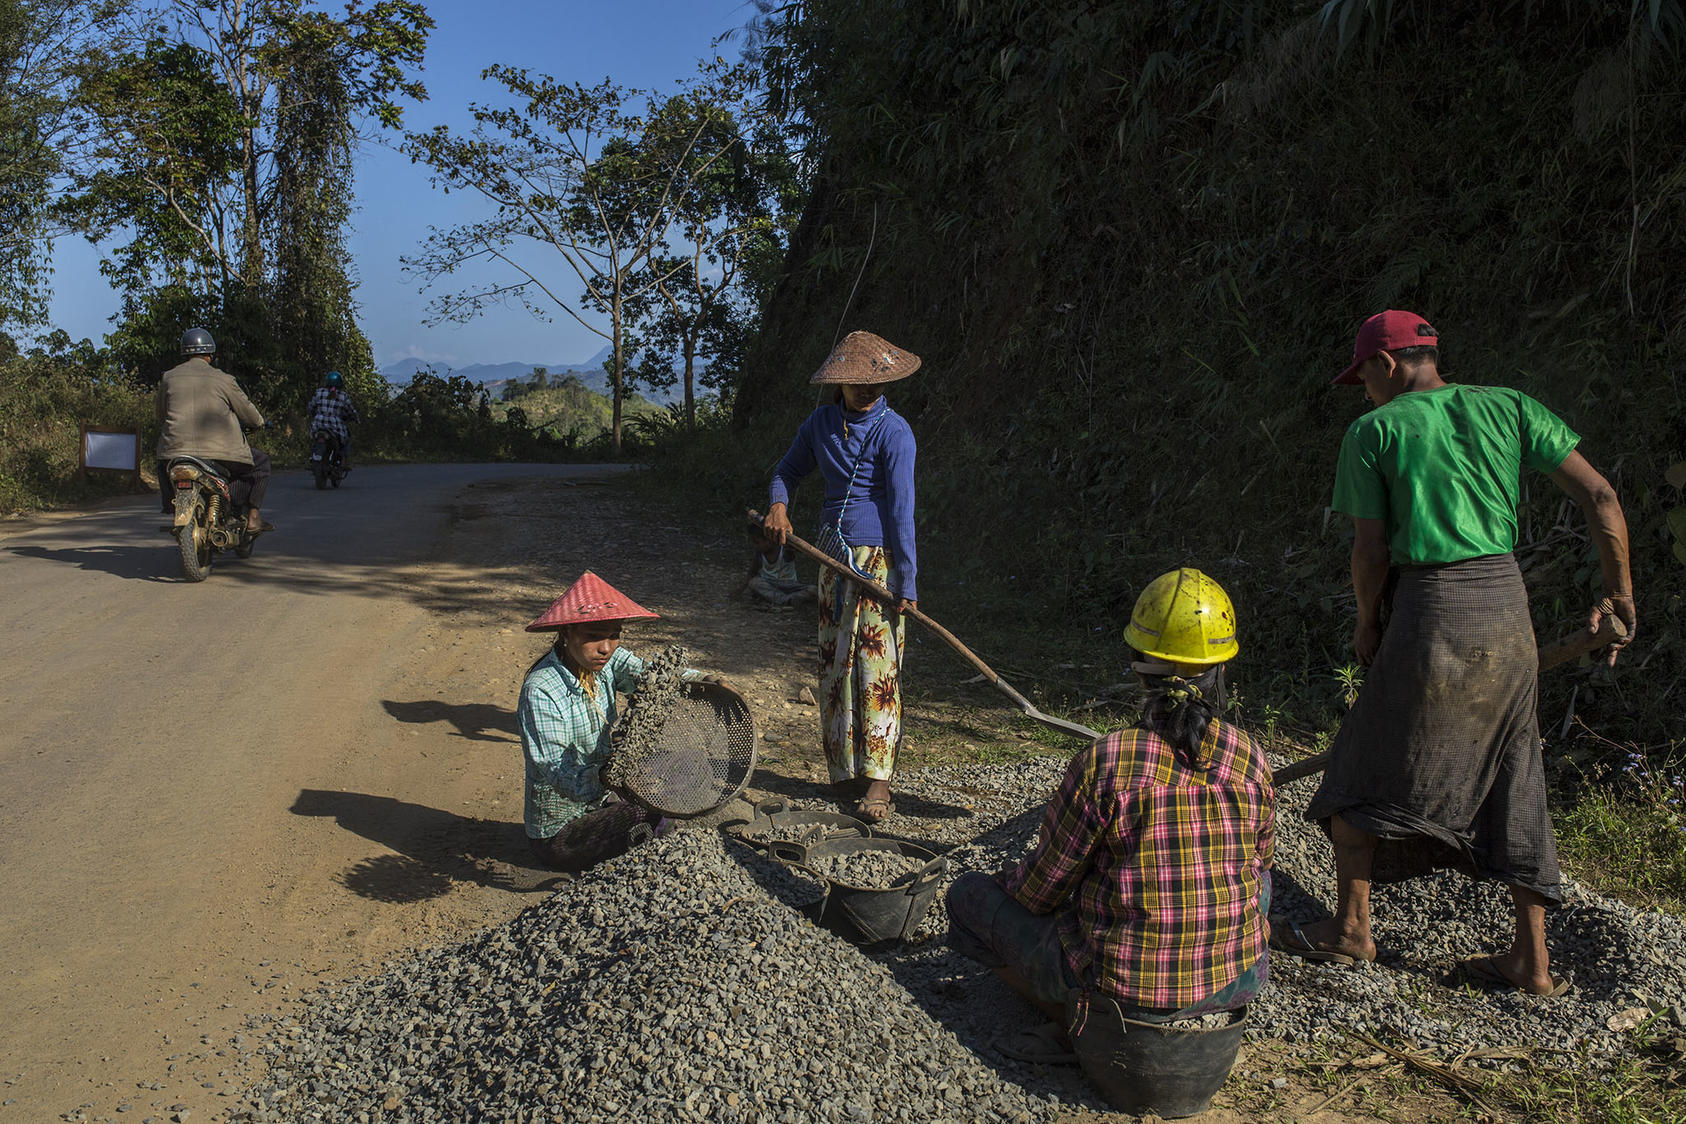 People do road work along the Irrawaddy River, where the Chinese-backed Myitsone Dam project (now suspended) is located in Myitkyina, Myanmar, March 22, 2017. (Minzayar Oo/The New York Times)